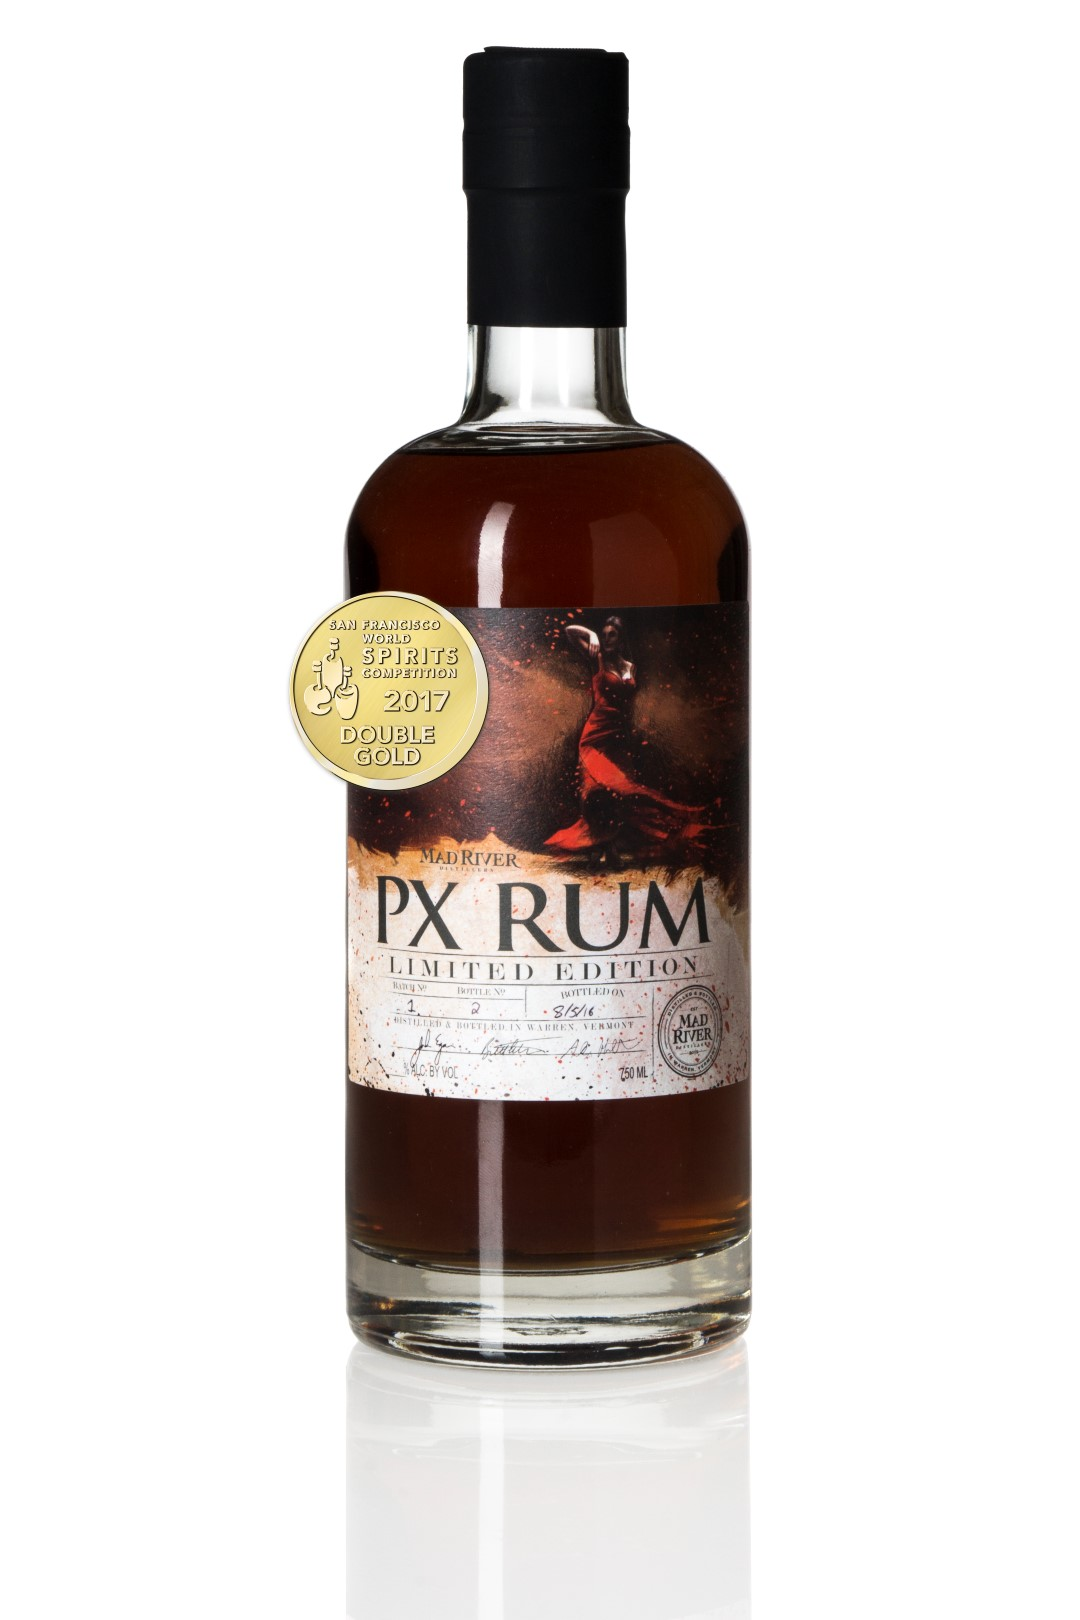 Mad River PX Rum Limited Edition